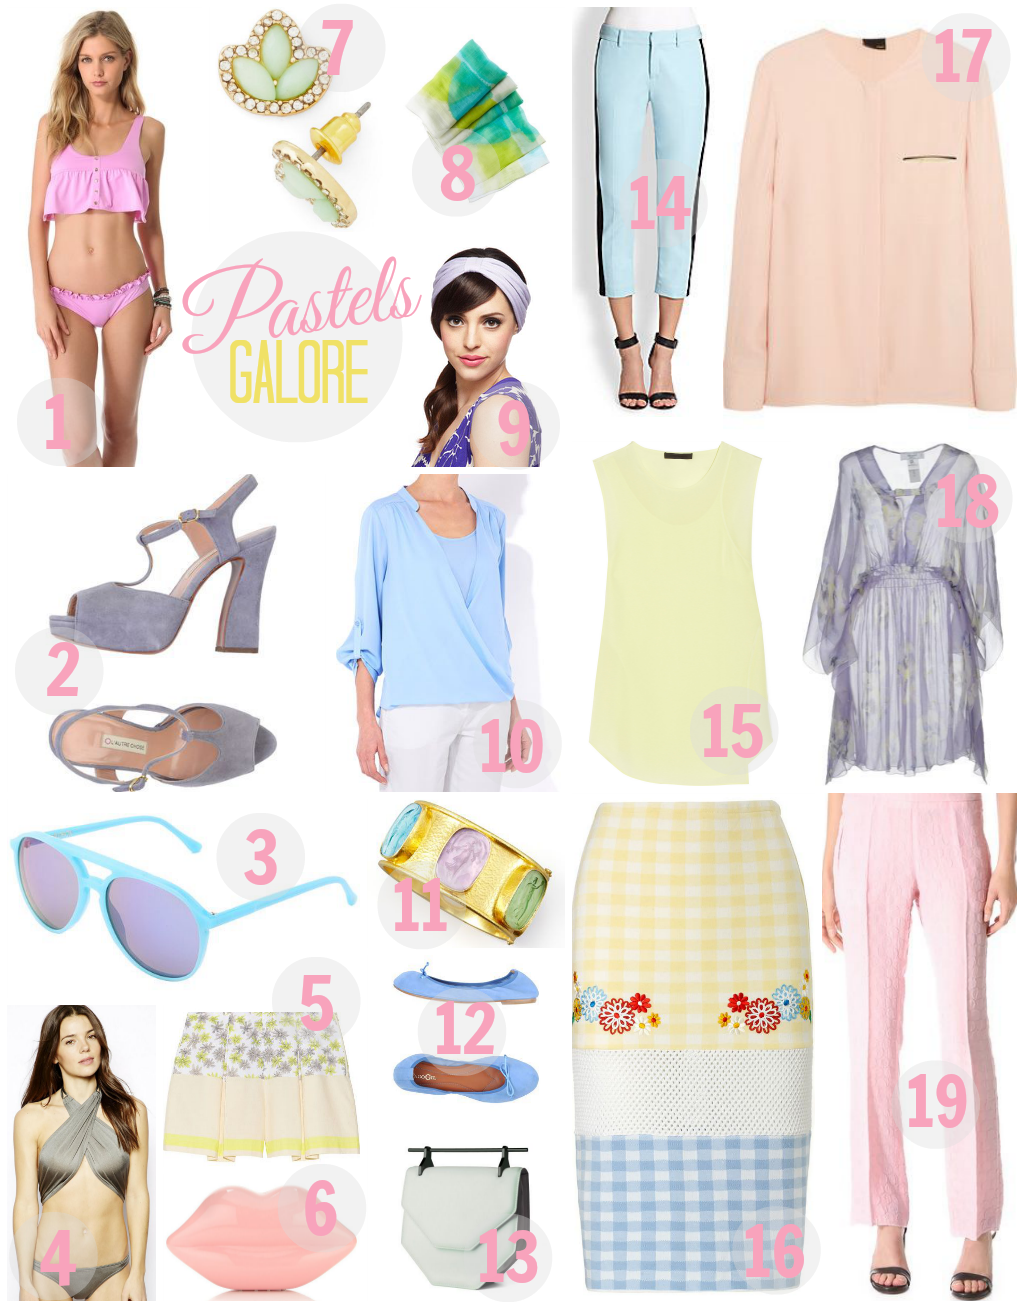 Lust List: Pastels Galore, Tanvii.com